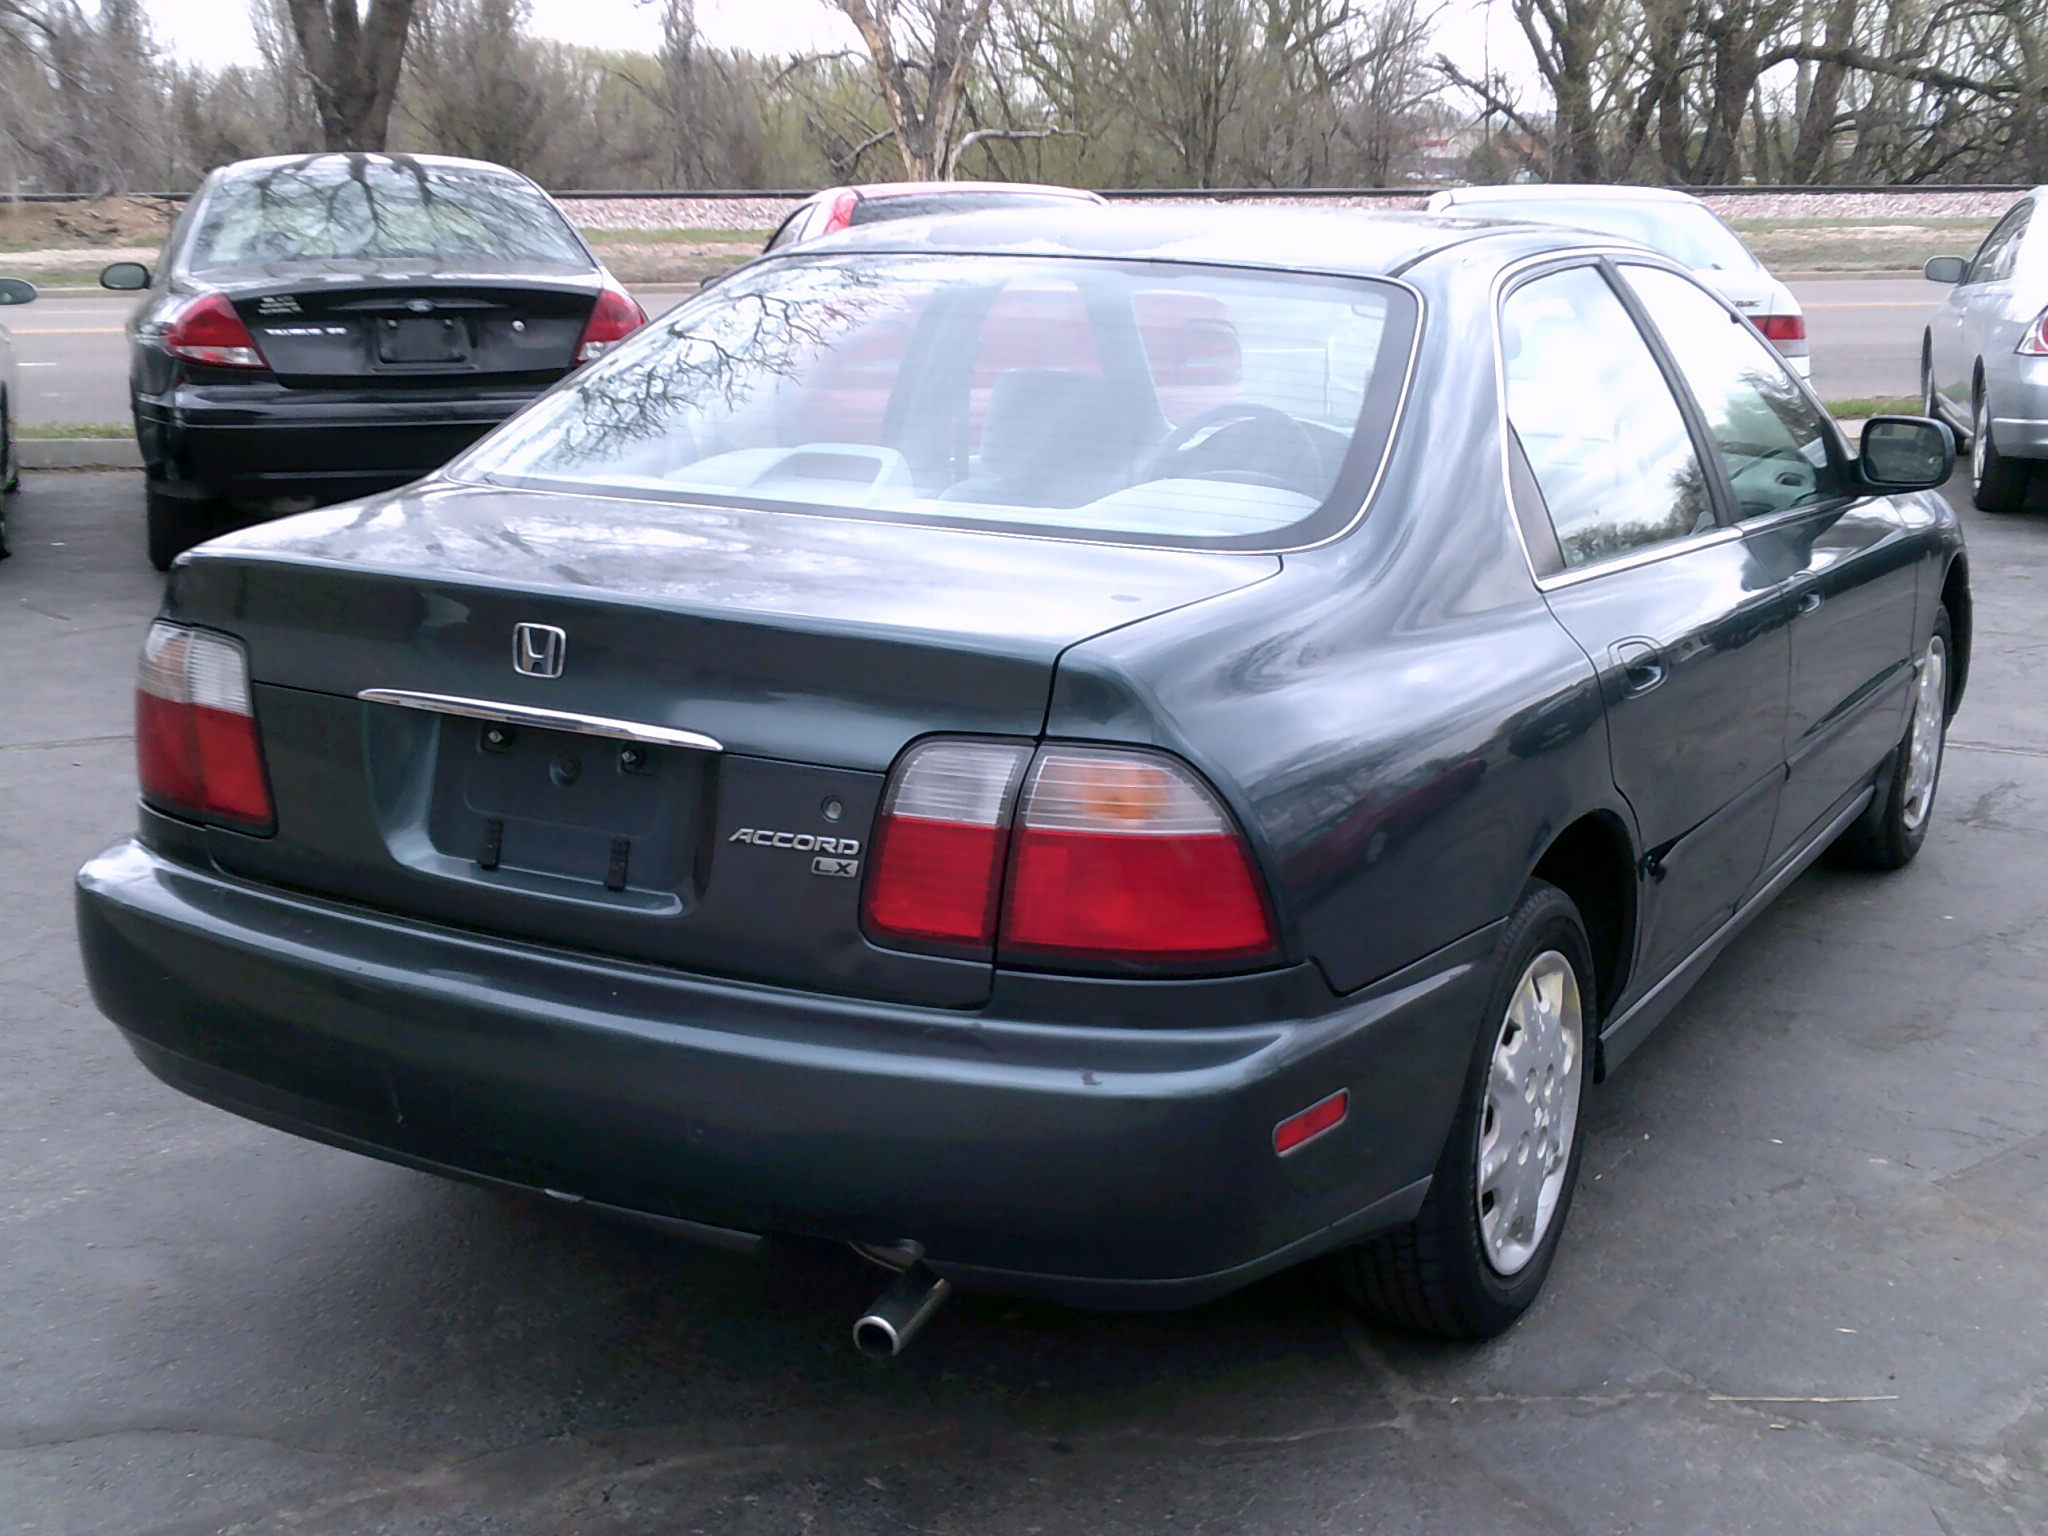 96 Accord Lx Rear View Mr Auto